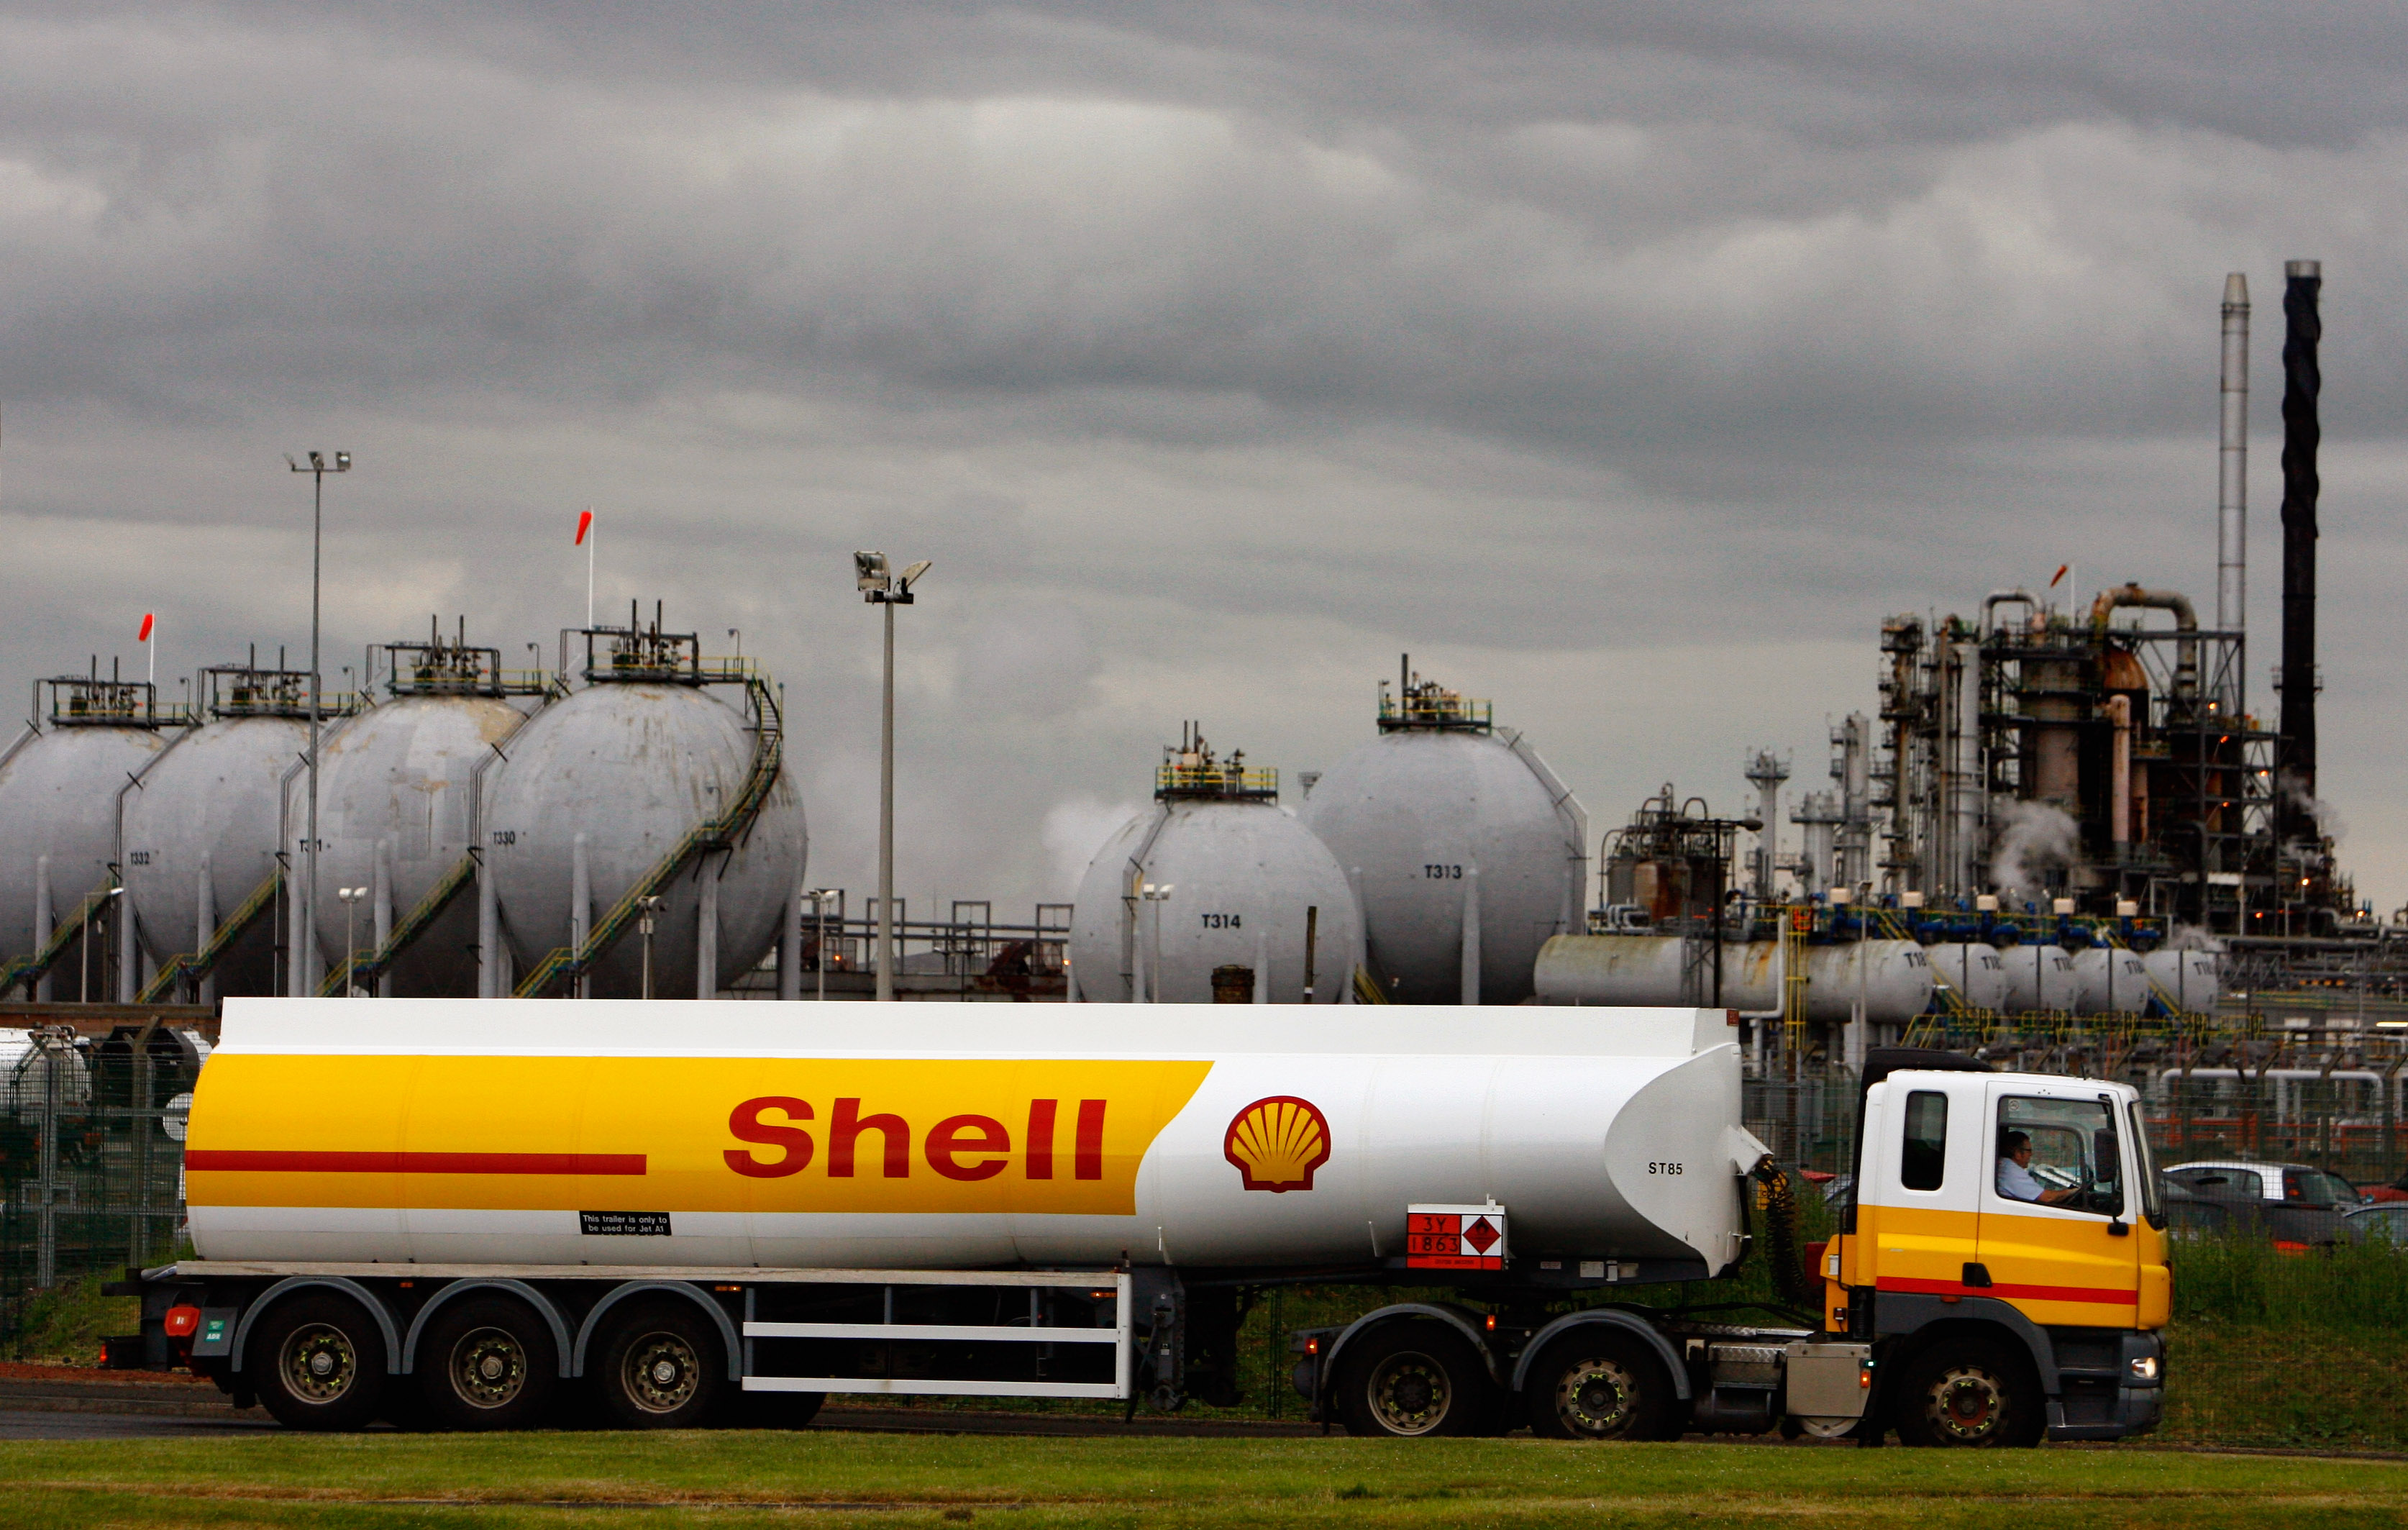 Shell Tanker Drivers Return To Work Following Strike